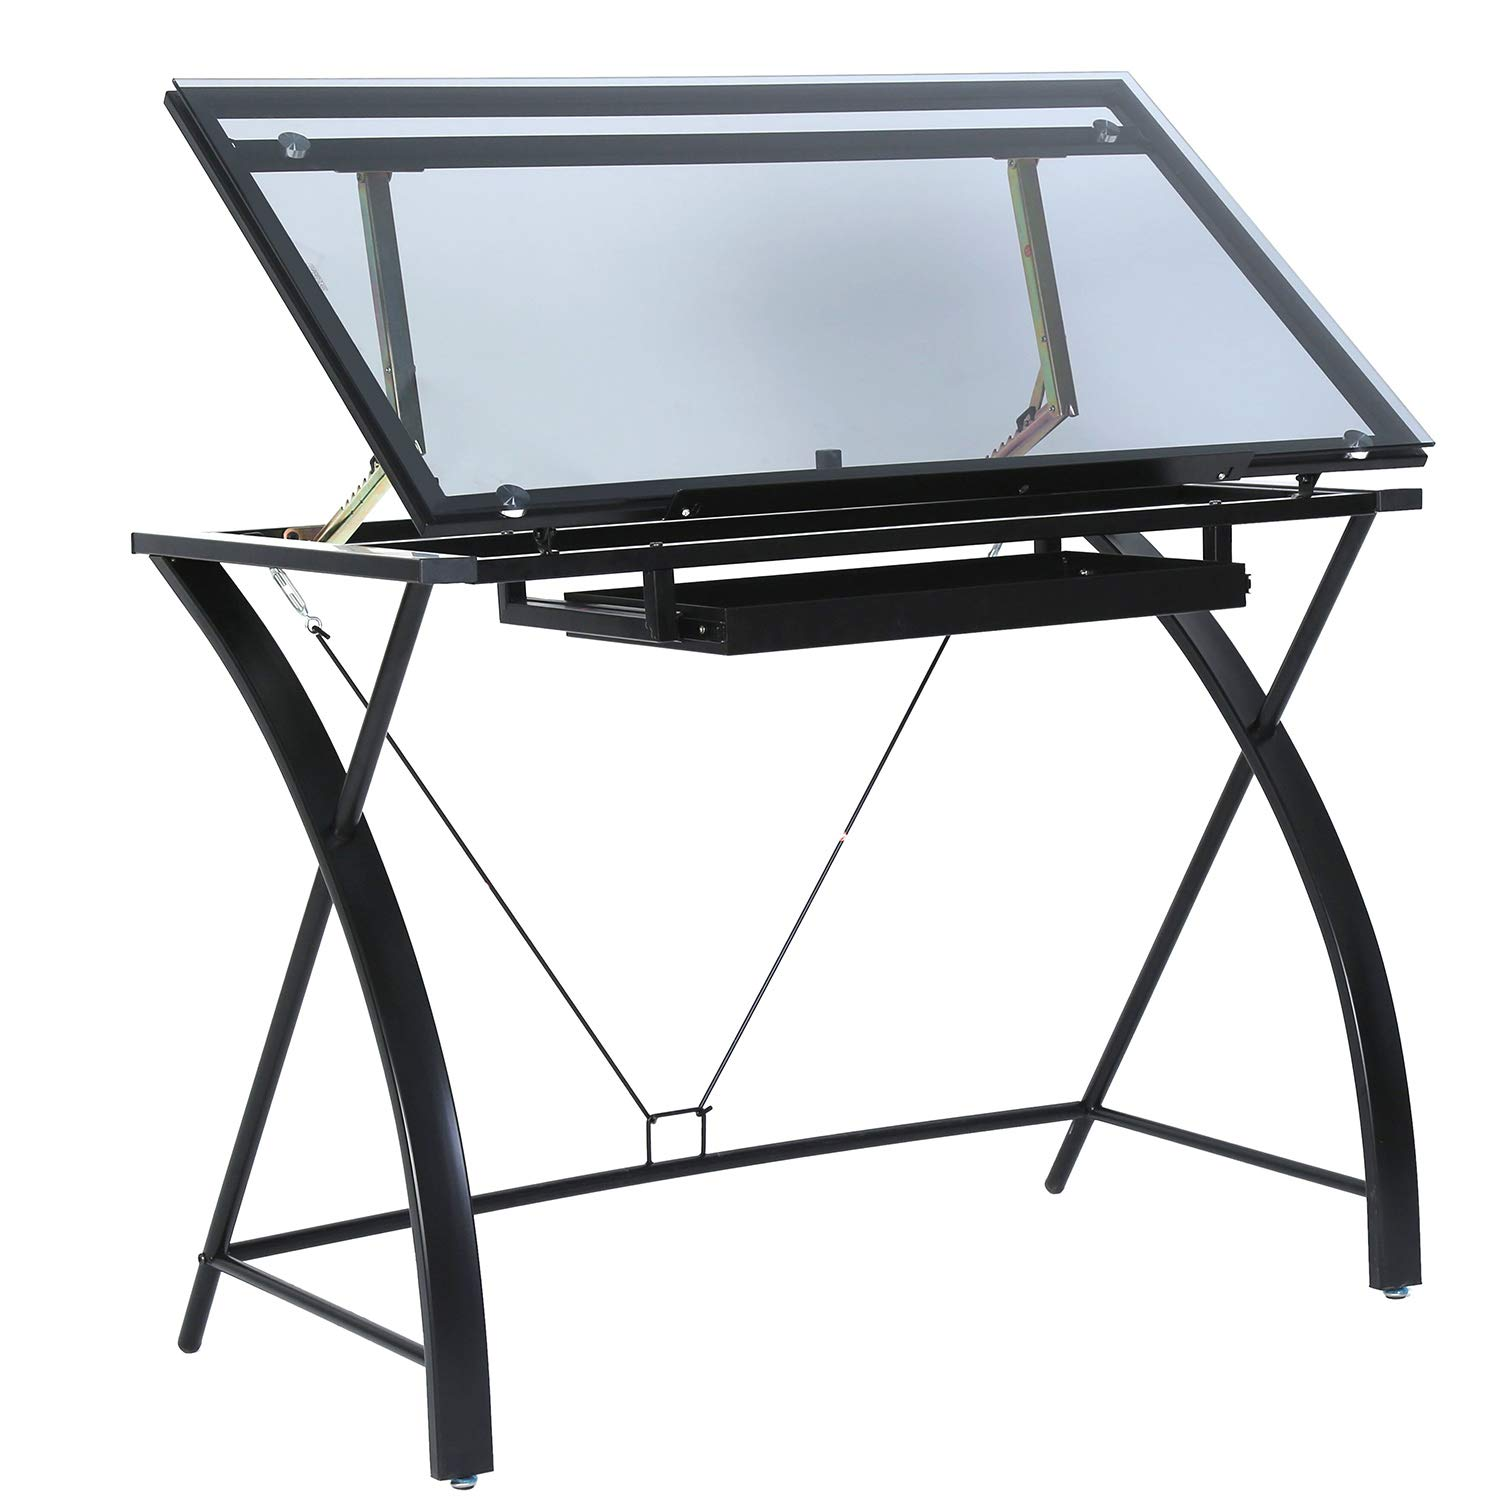 MEEDEN Glass Top Drafting Table - Tiltable Drawing Desk - Modern Craft Station with Large Working Surface - Perfect for Artwork, Graphic Design, Sketching and Tracing (Grey Tempered Glass)